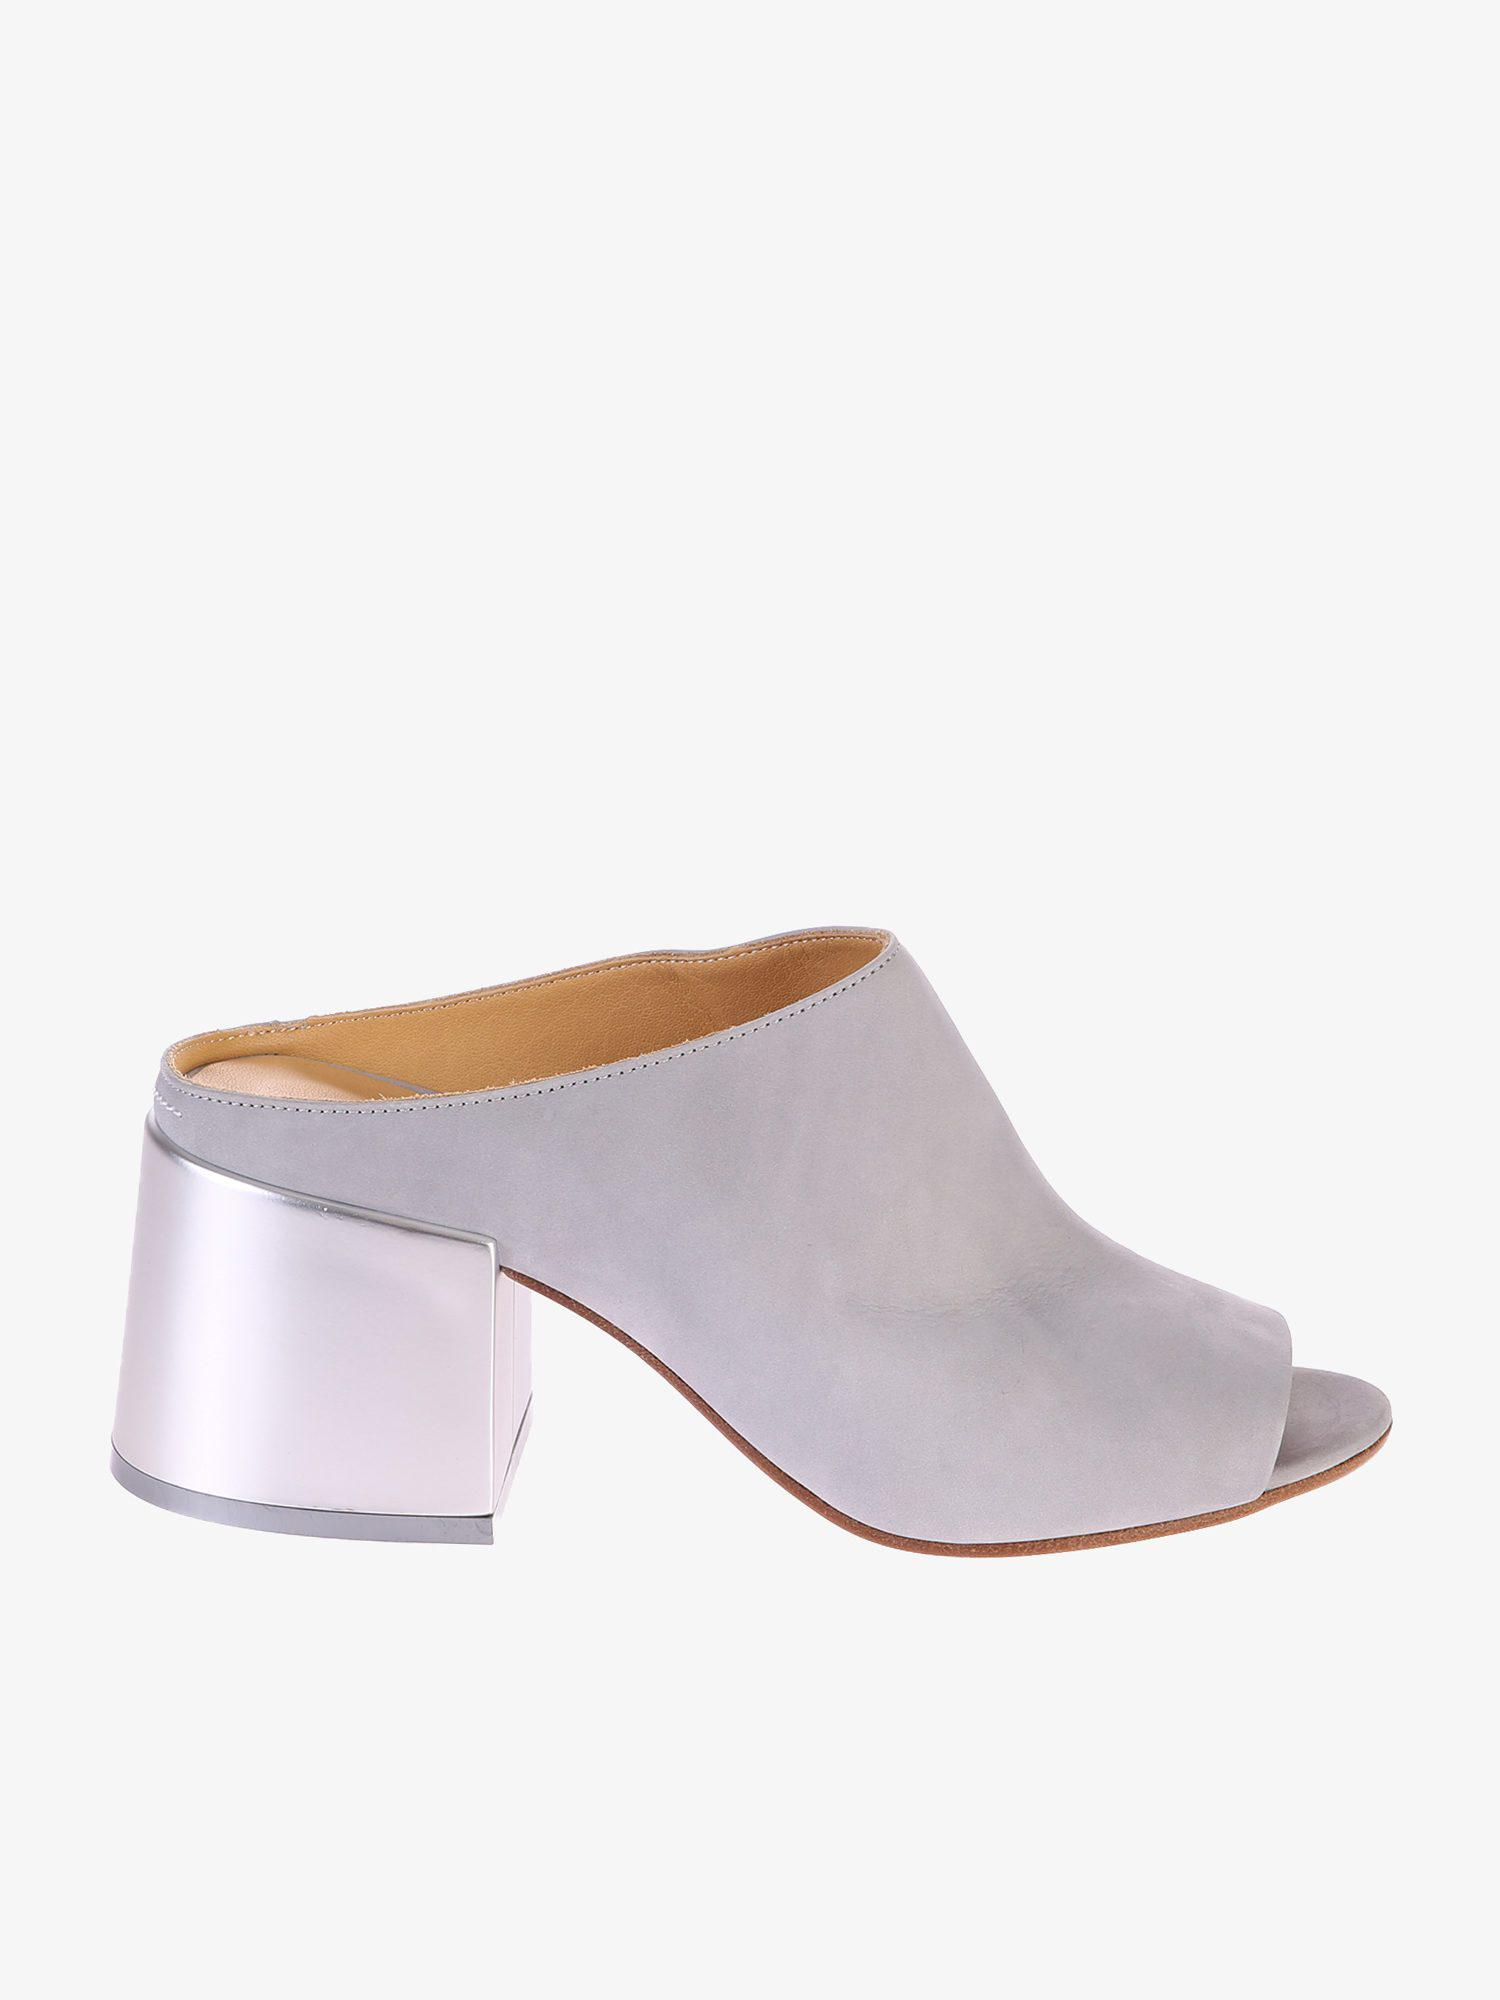 82048227527b Lyst - Mm6 By Maison Martin Margiela Leather Mules - Save 30%